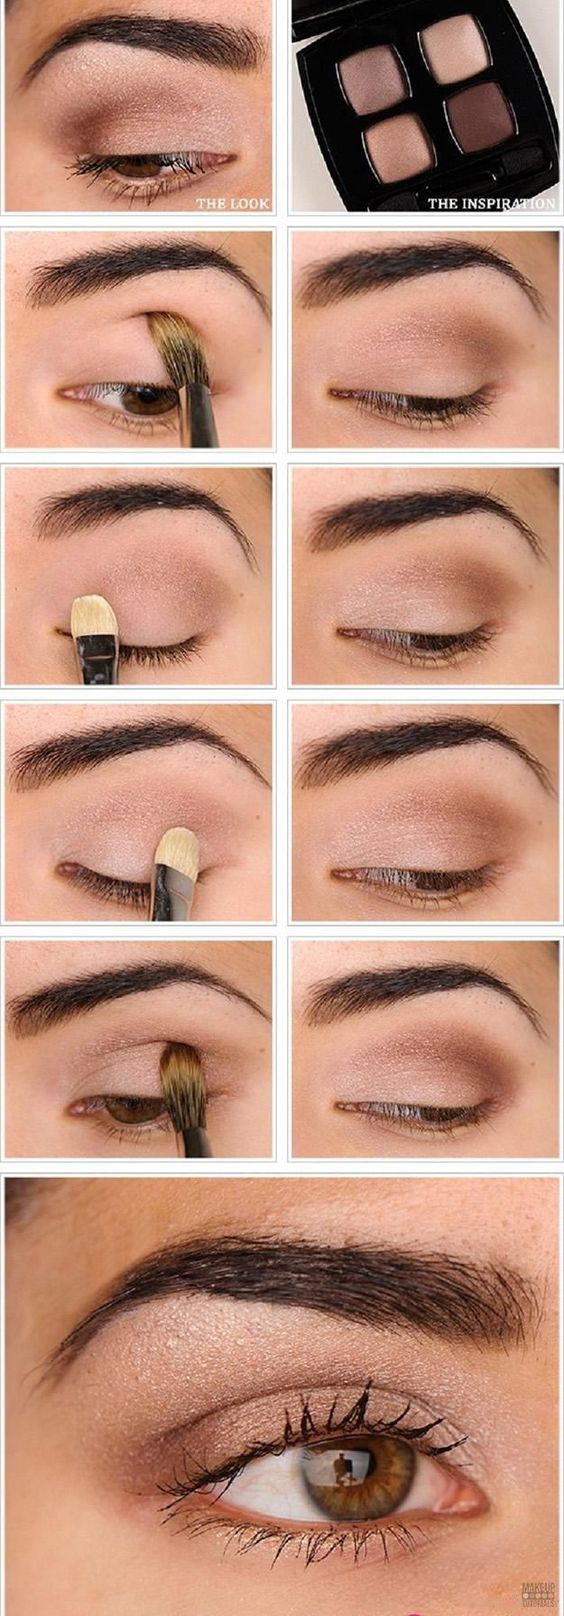 Eye Makeup For Brown Eyes Steps 15 Simple Eye Makeup Ideas For Work Outfits Pretty Designs